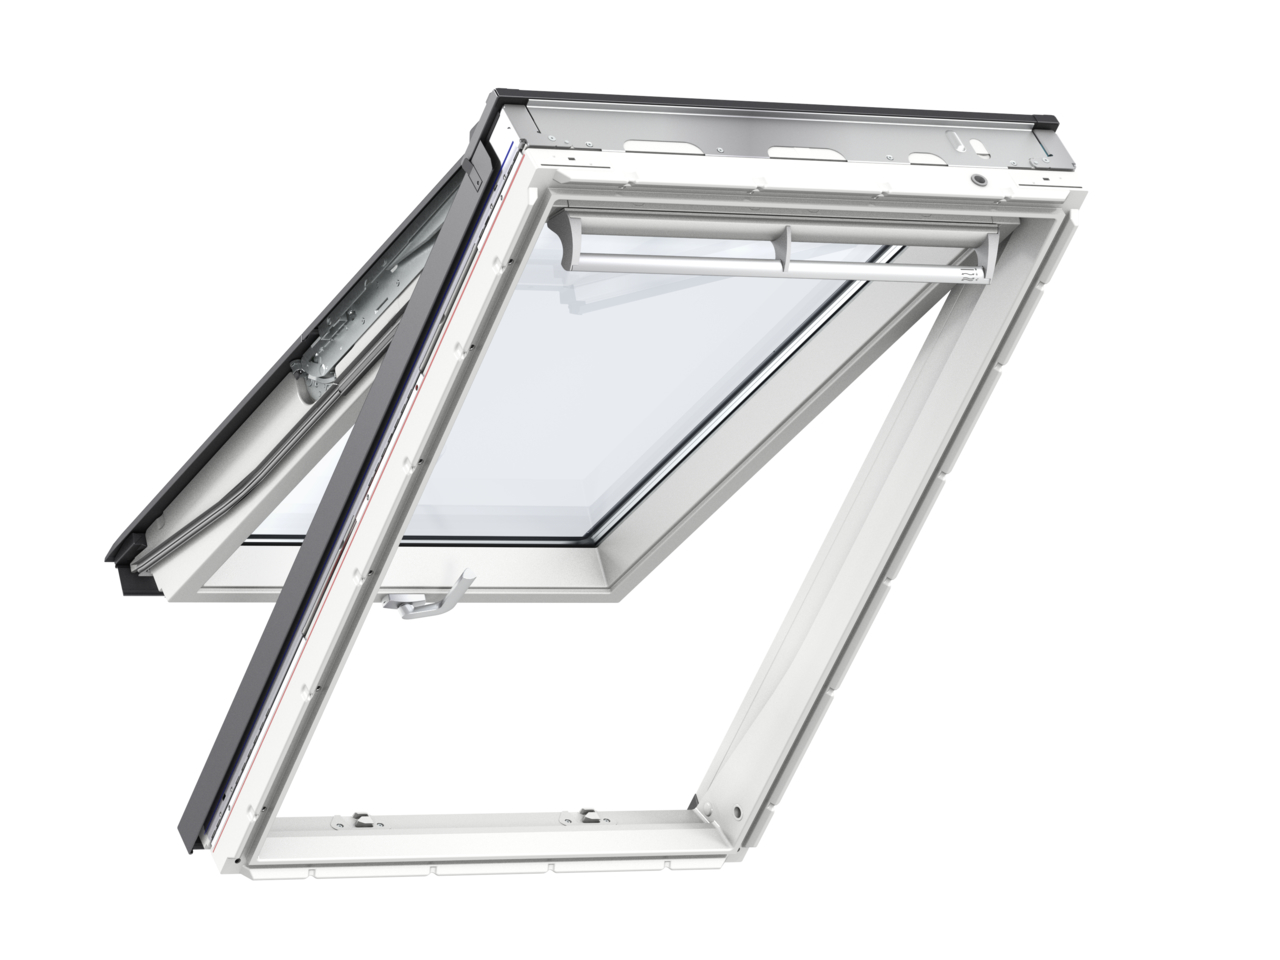 Velux GPU PK08 940 x 1400mm Top Hung 62Pane Roof Window - White Polyurethane